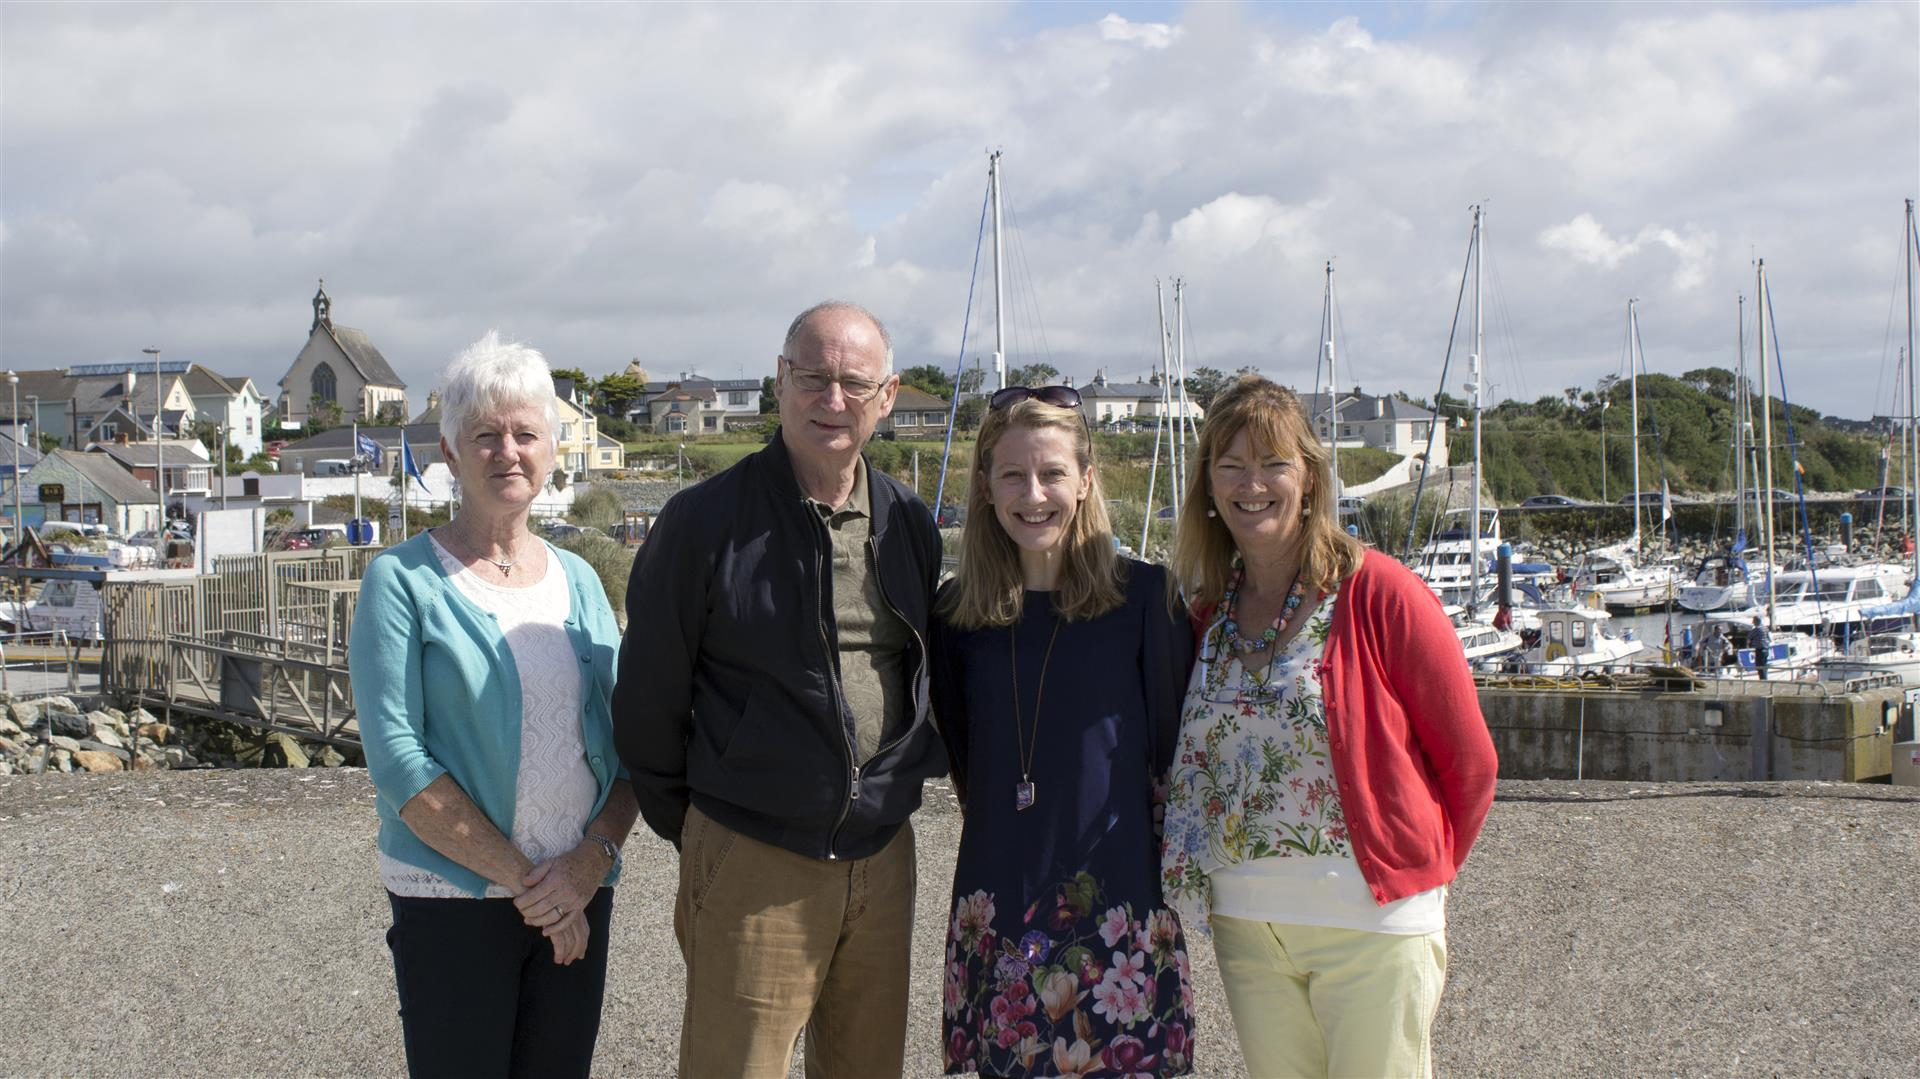 Mary Byrne, Billy Roche, Cat Hogan, Lucy Moore